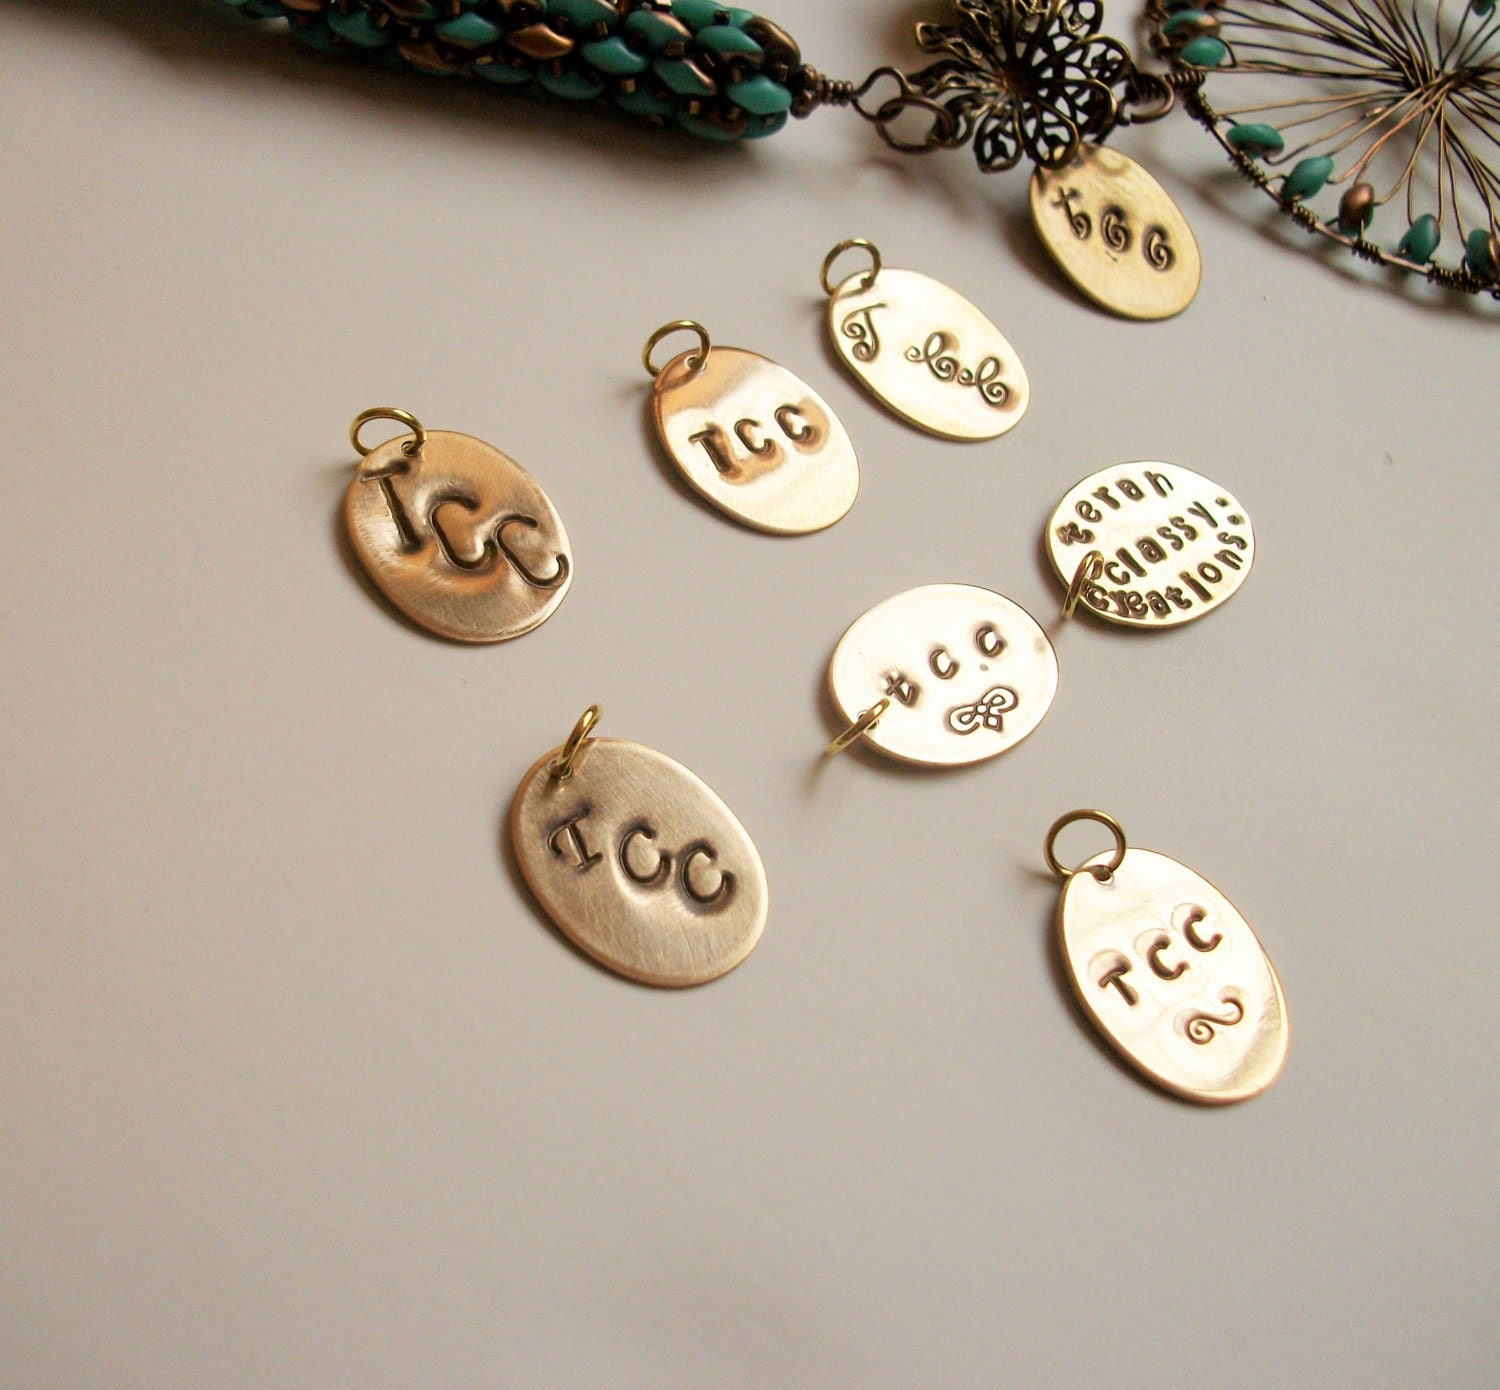 Personalized Metal Jewelry Tag Rustic Solid Brass Gold